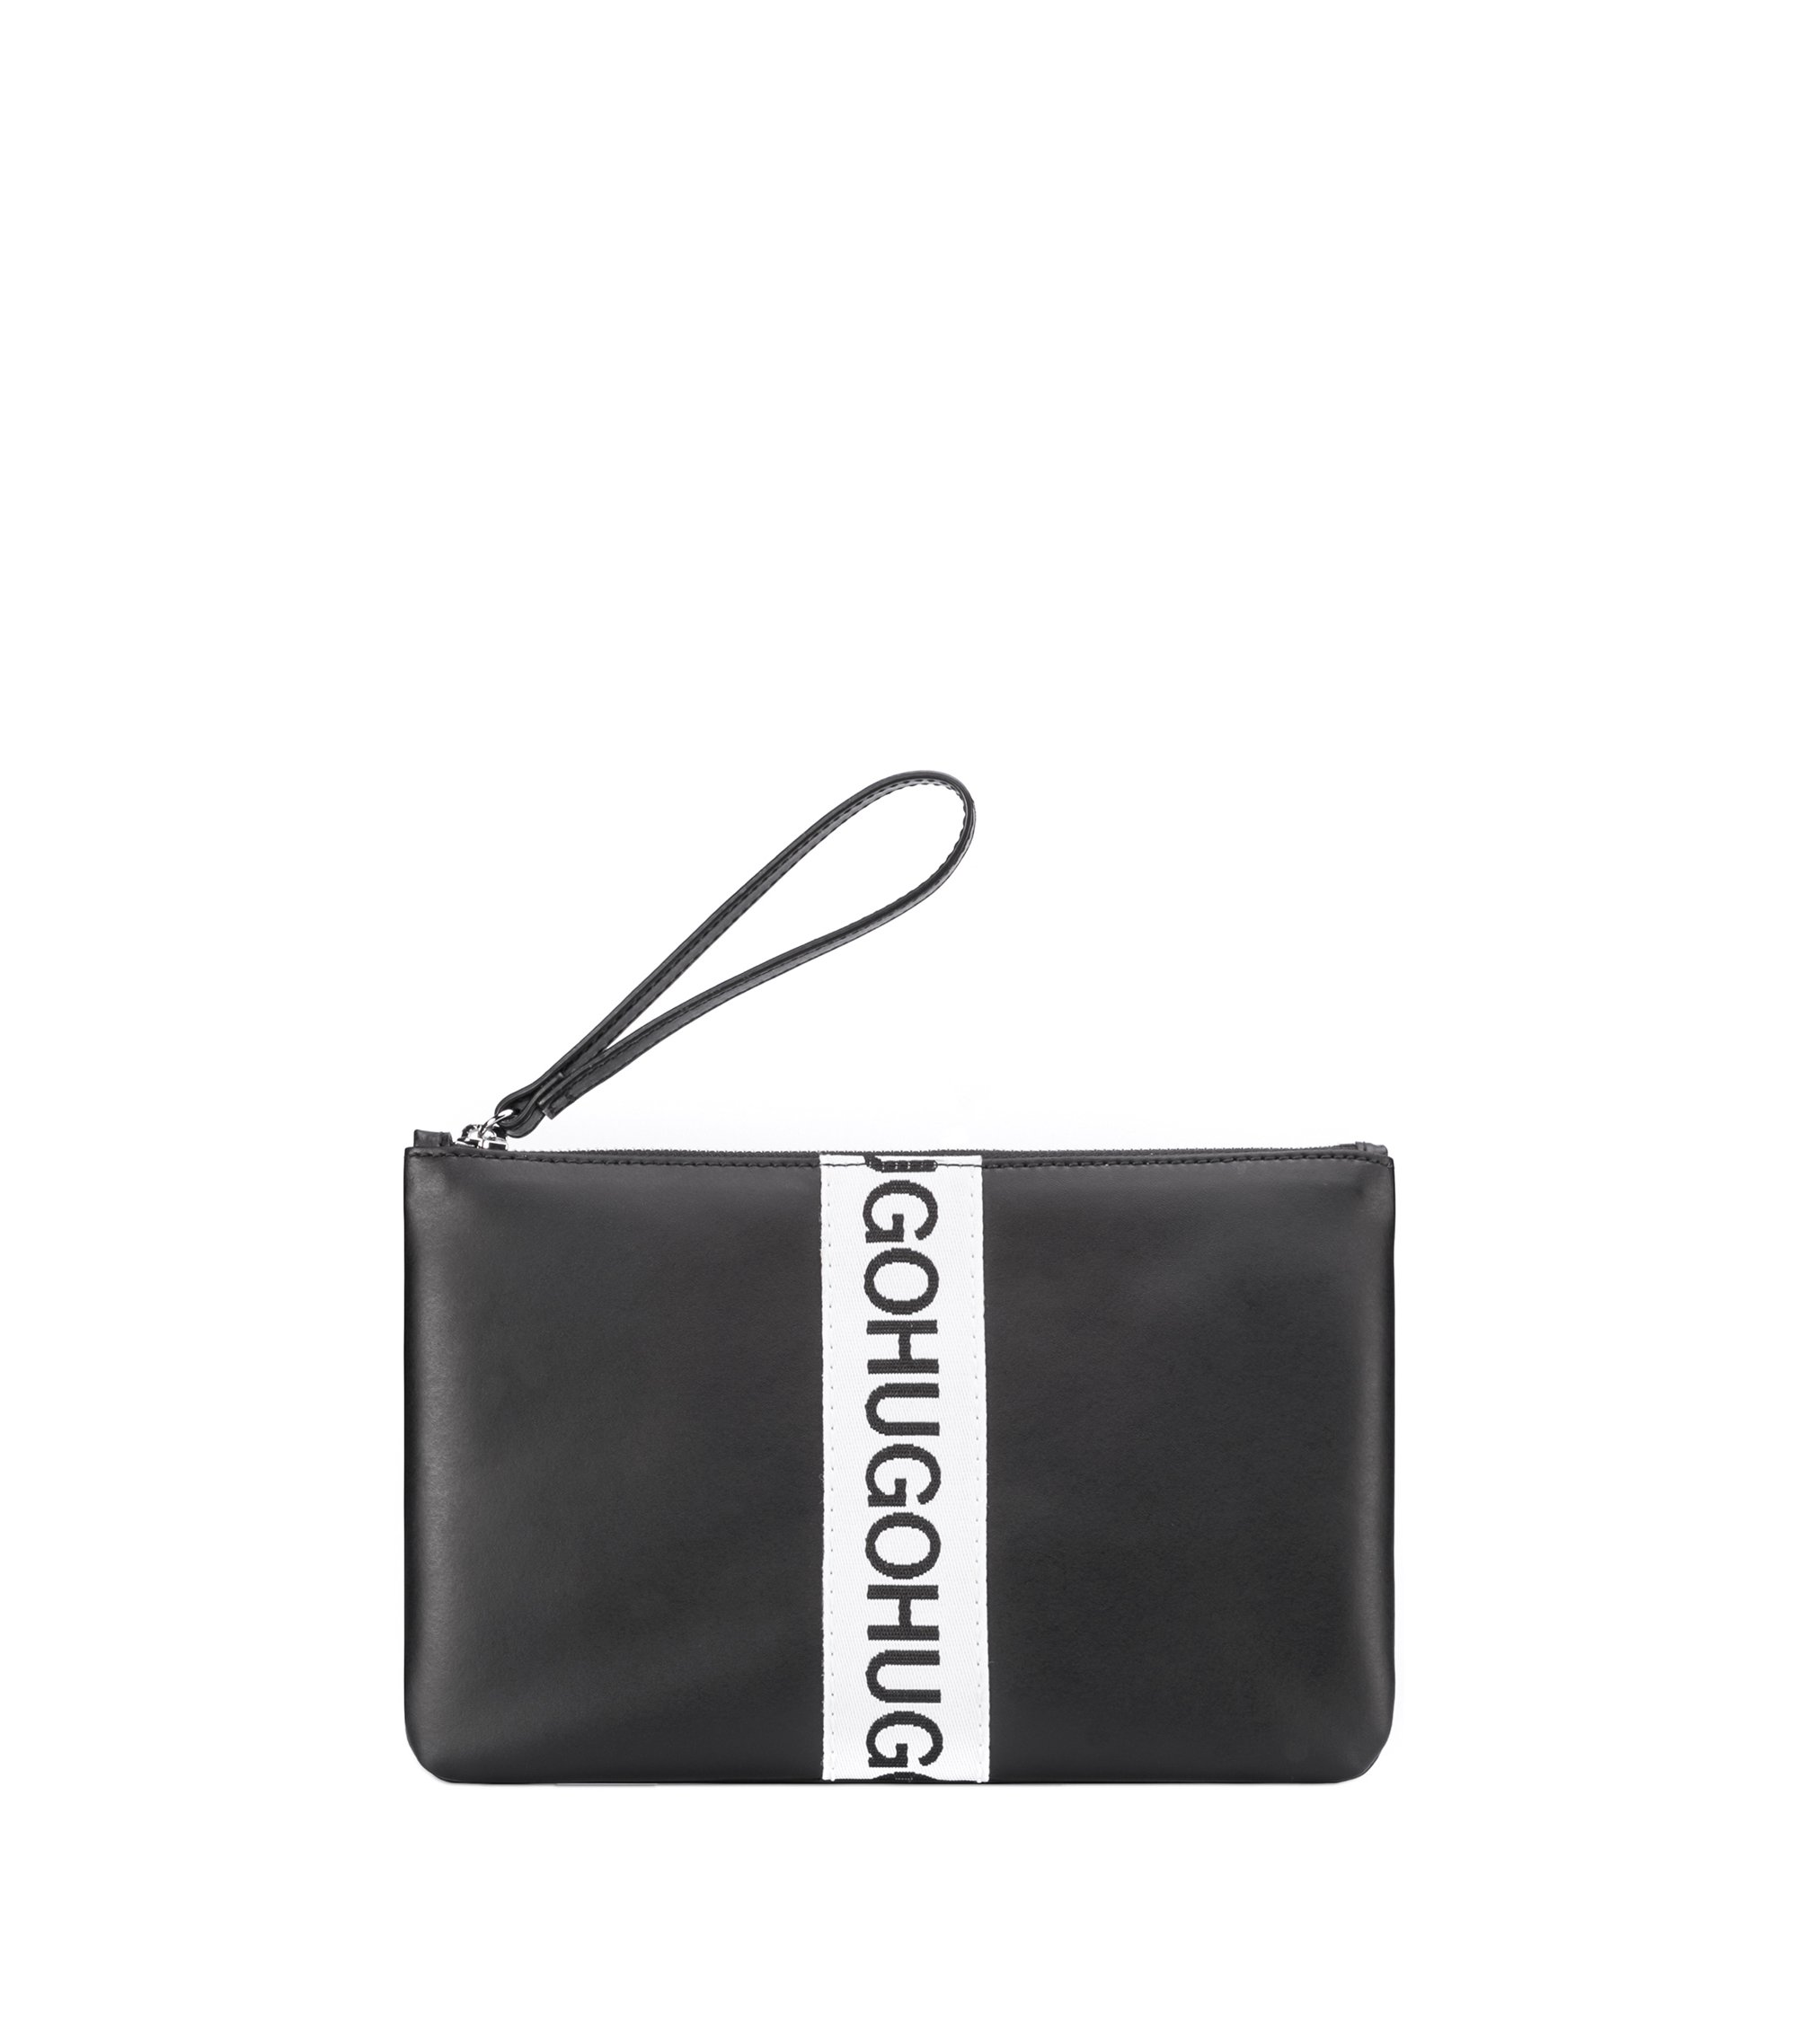 Leather pouch with repeat logo, Black